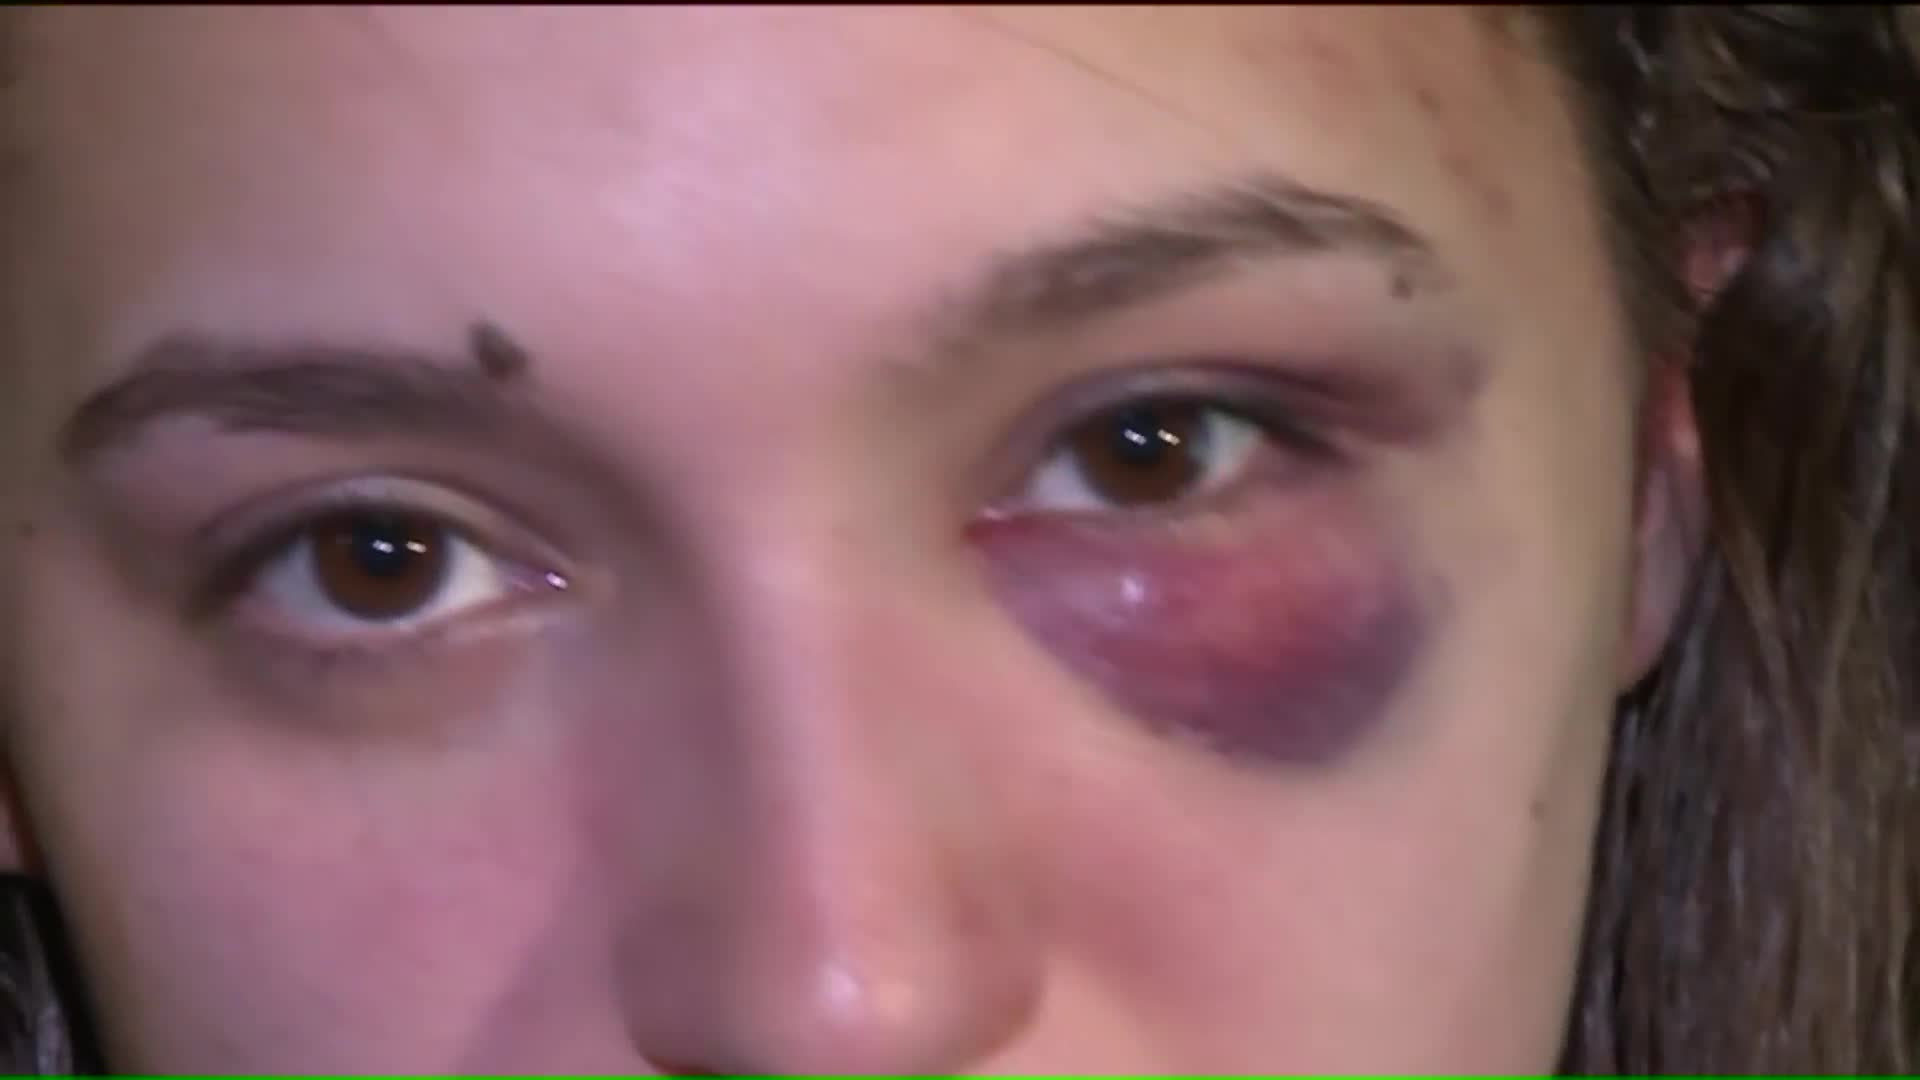 Woman Brutally Beaten On Train Says Passengers Just Watched It Happen